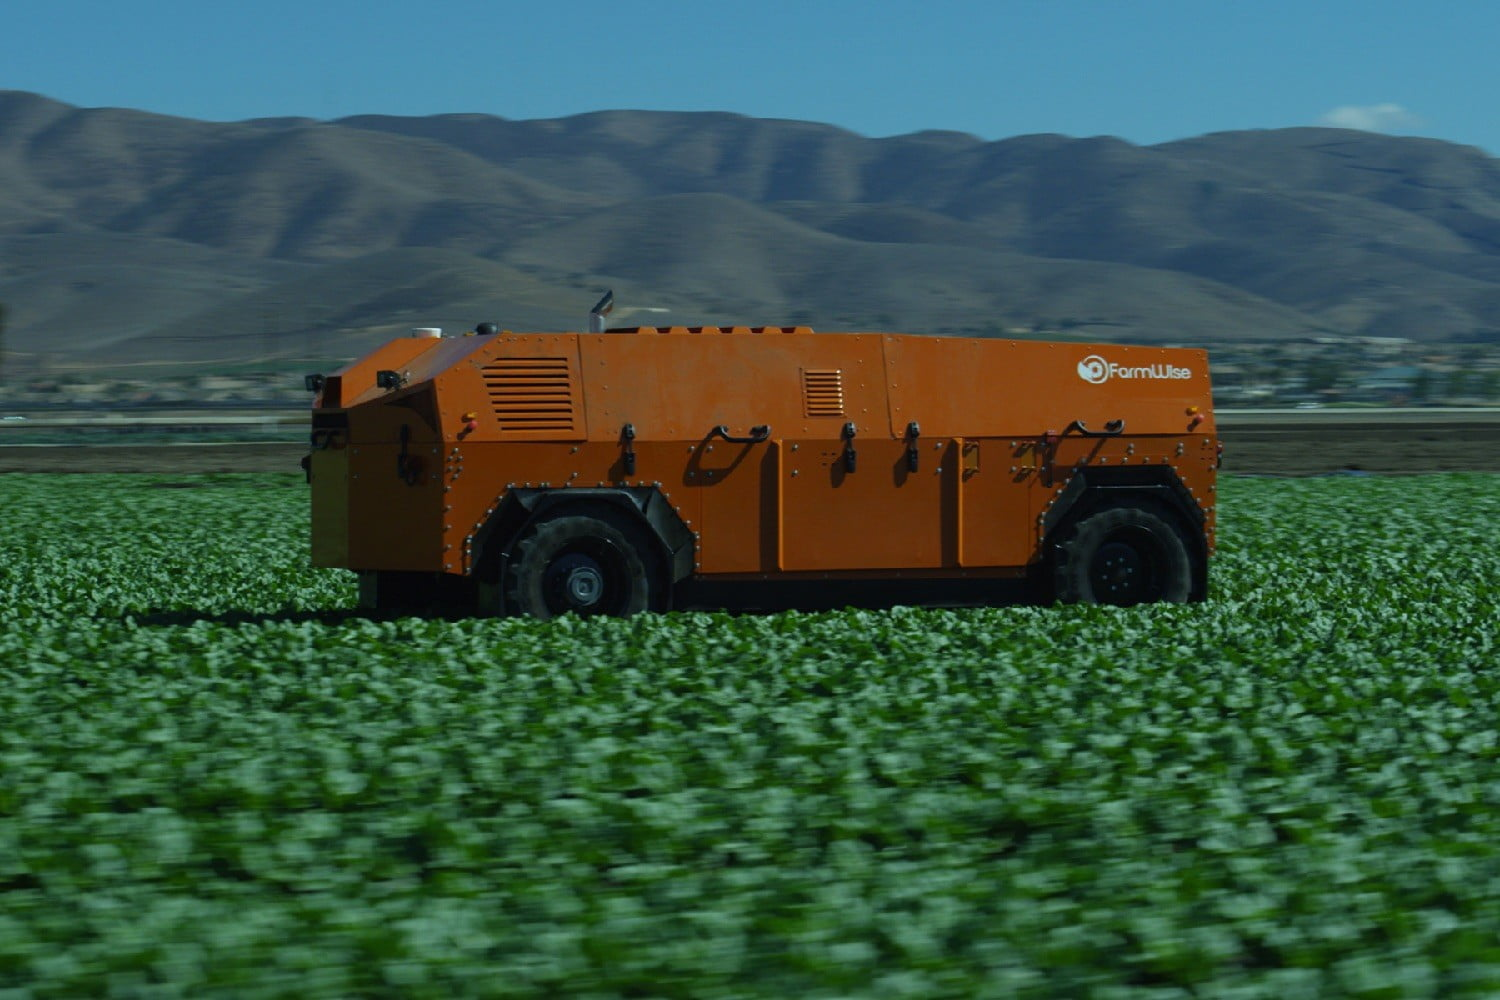 farmwise weed killing robot robot3